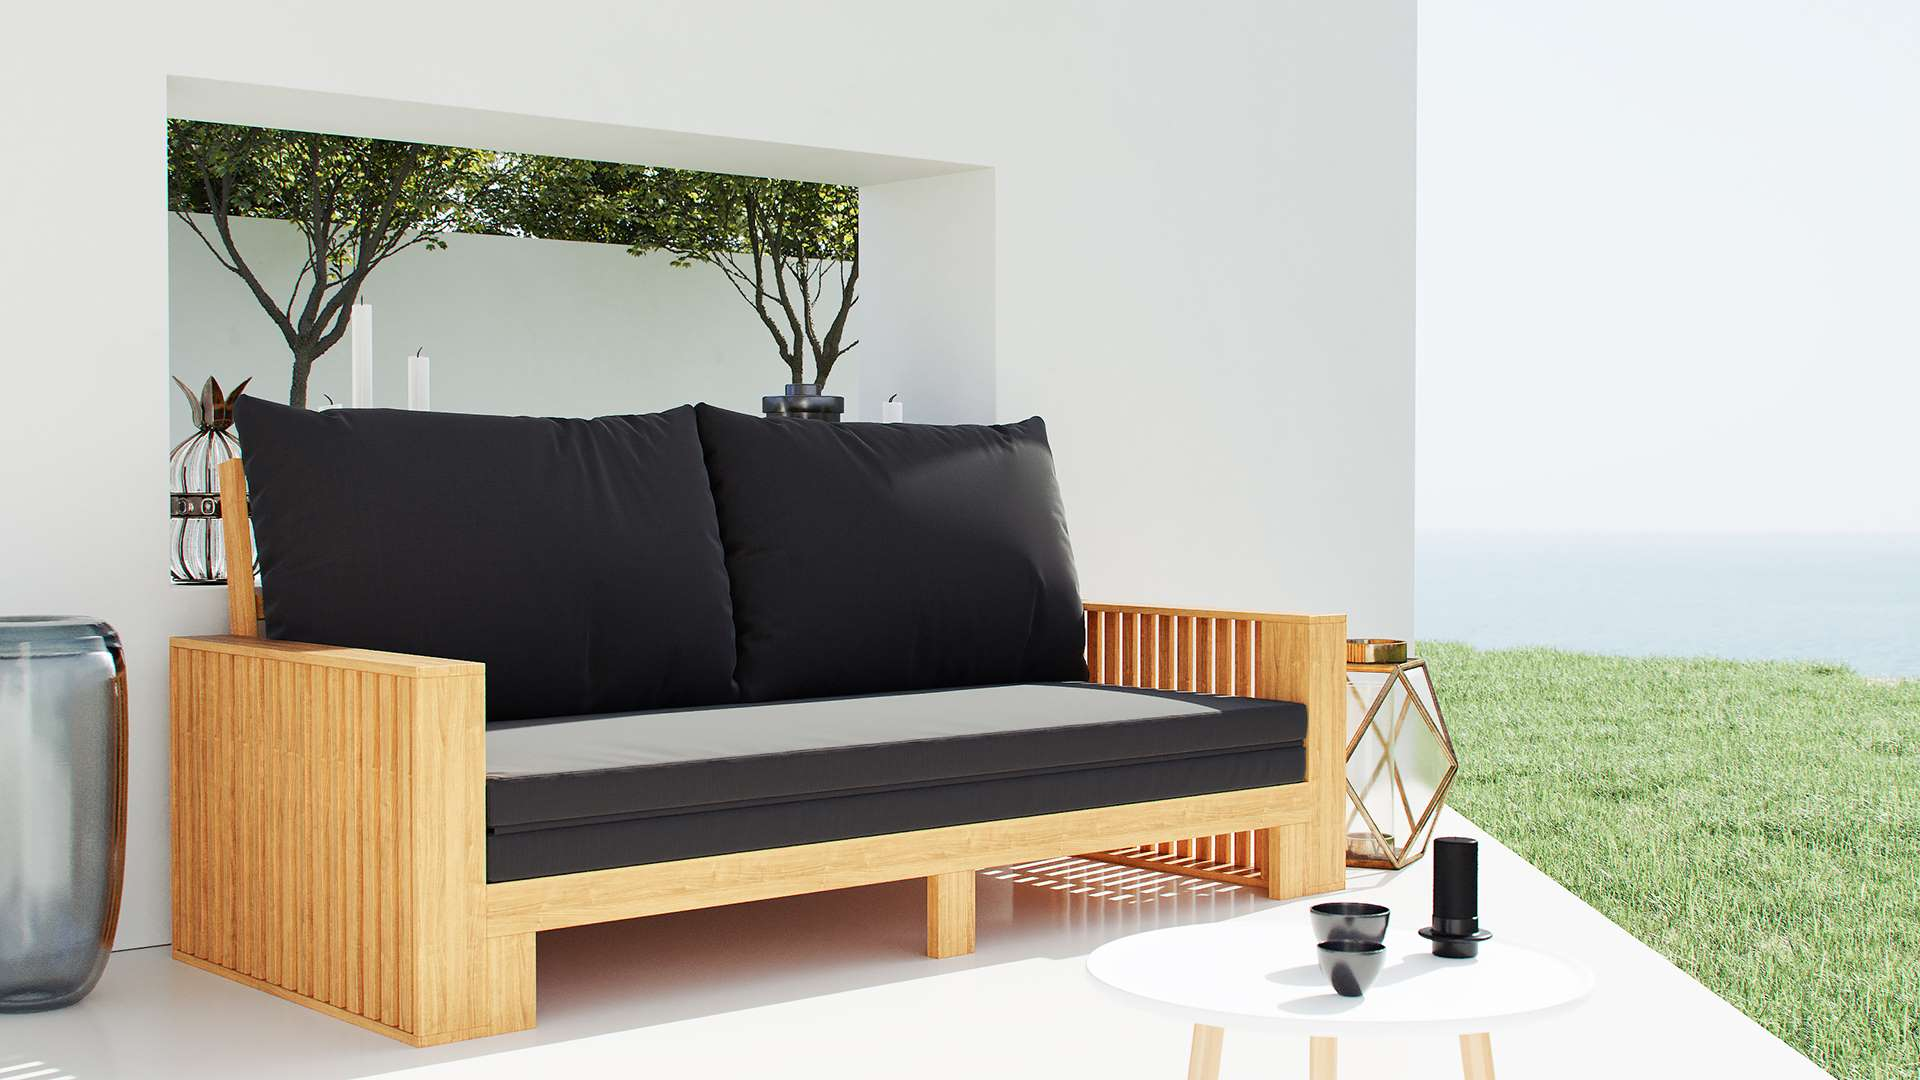 Daybed holz amazing tagesbett with daybed holz stunning gartenbank daybed akazienholz daybed - Daybed garten ...